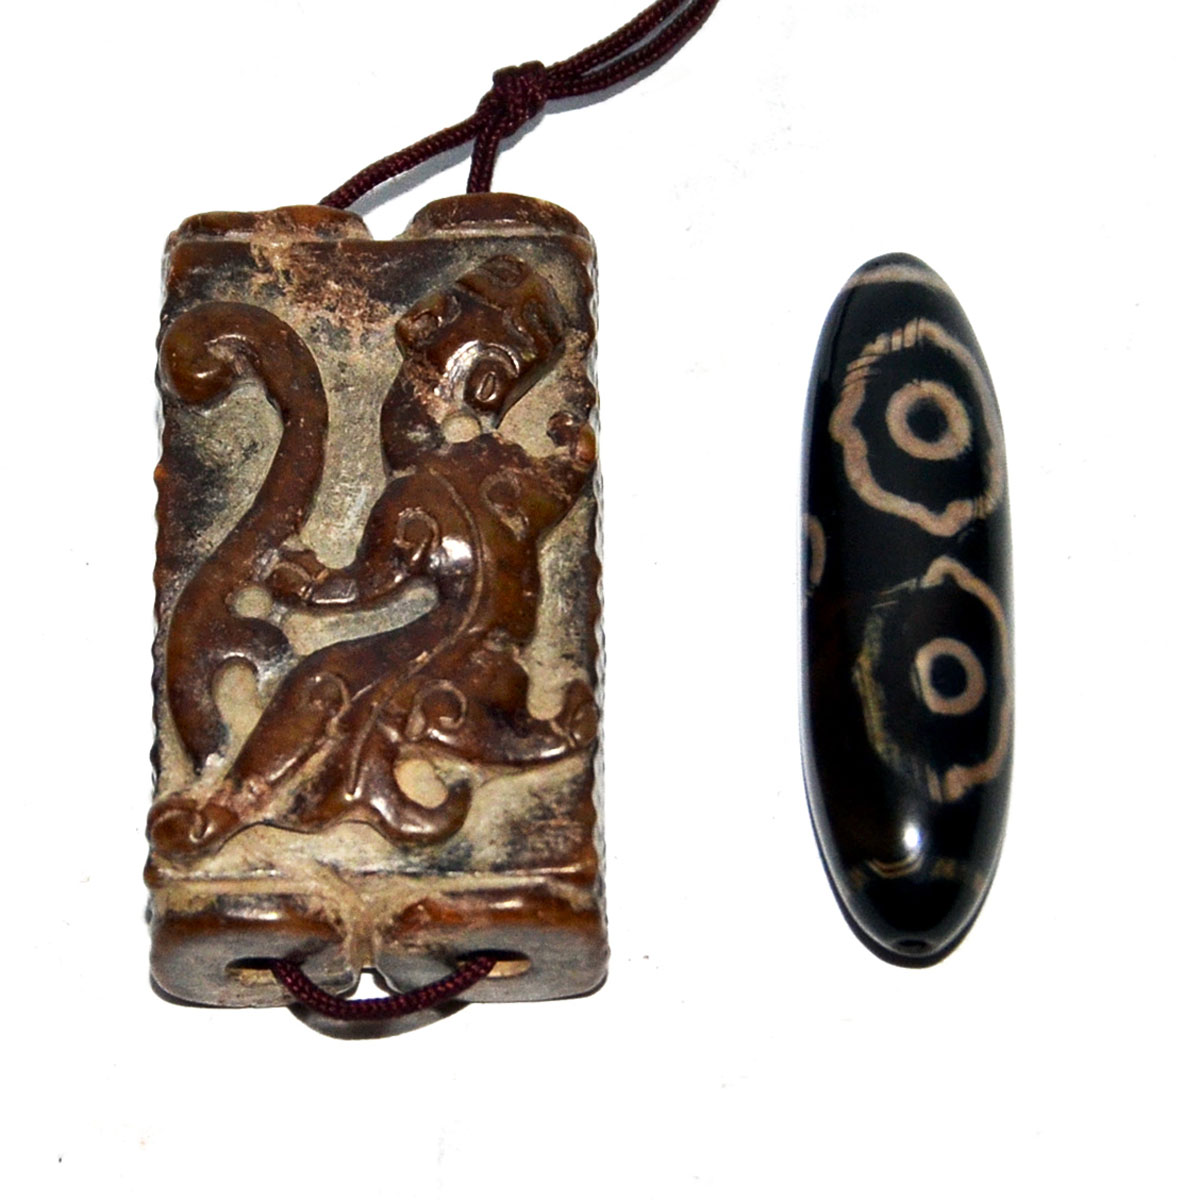 Lot 31 - 古掛飾兩件:小螭龍雙連玉琮,六眼天珠 A Small Archaistic Relief Carved Qilin Twin-linked Jade Cong Pendant & a